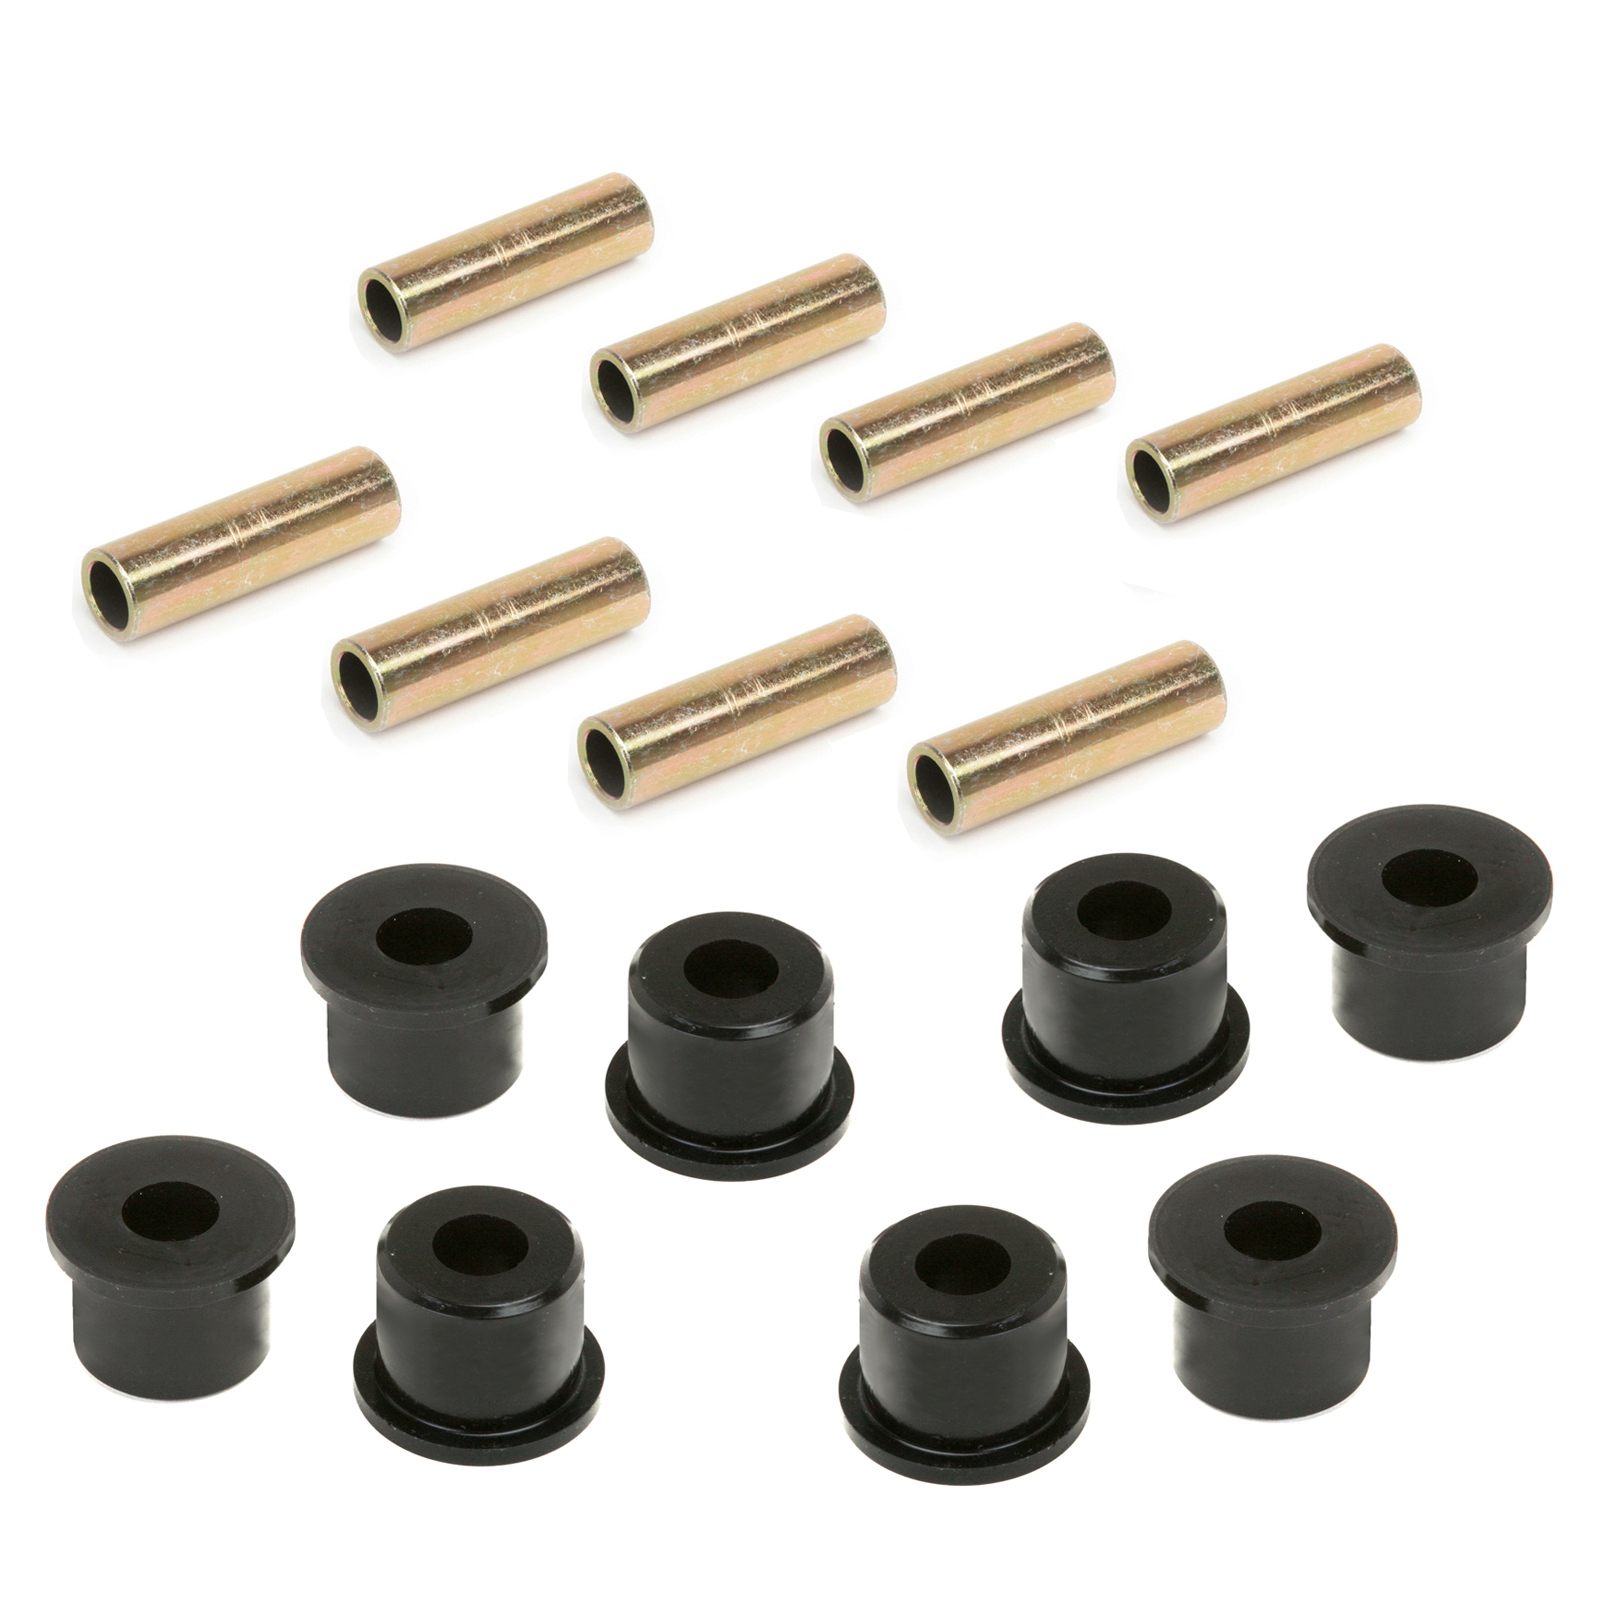 Deaver Hardware & Bushings